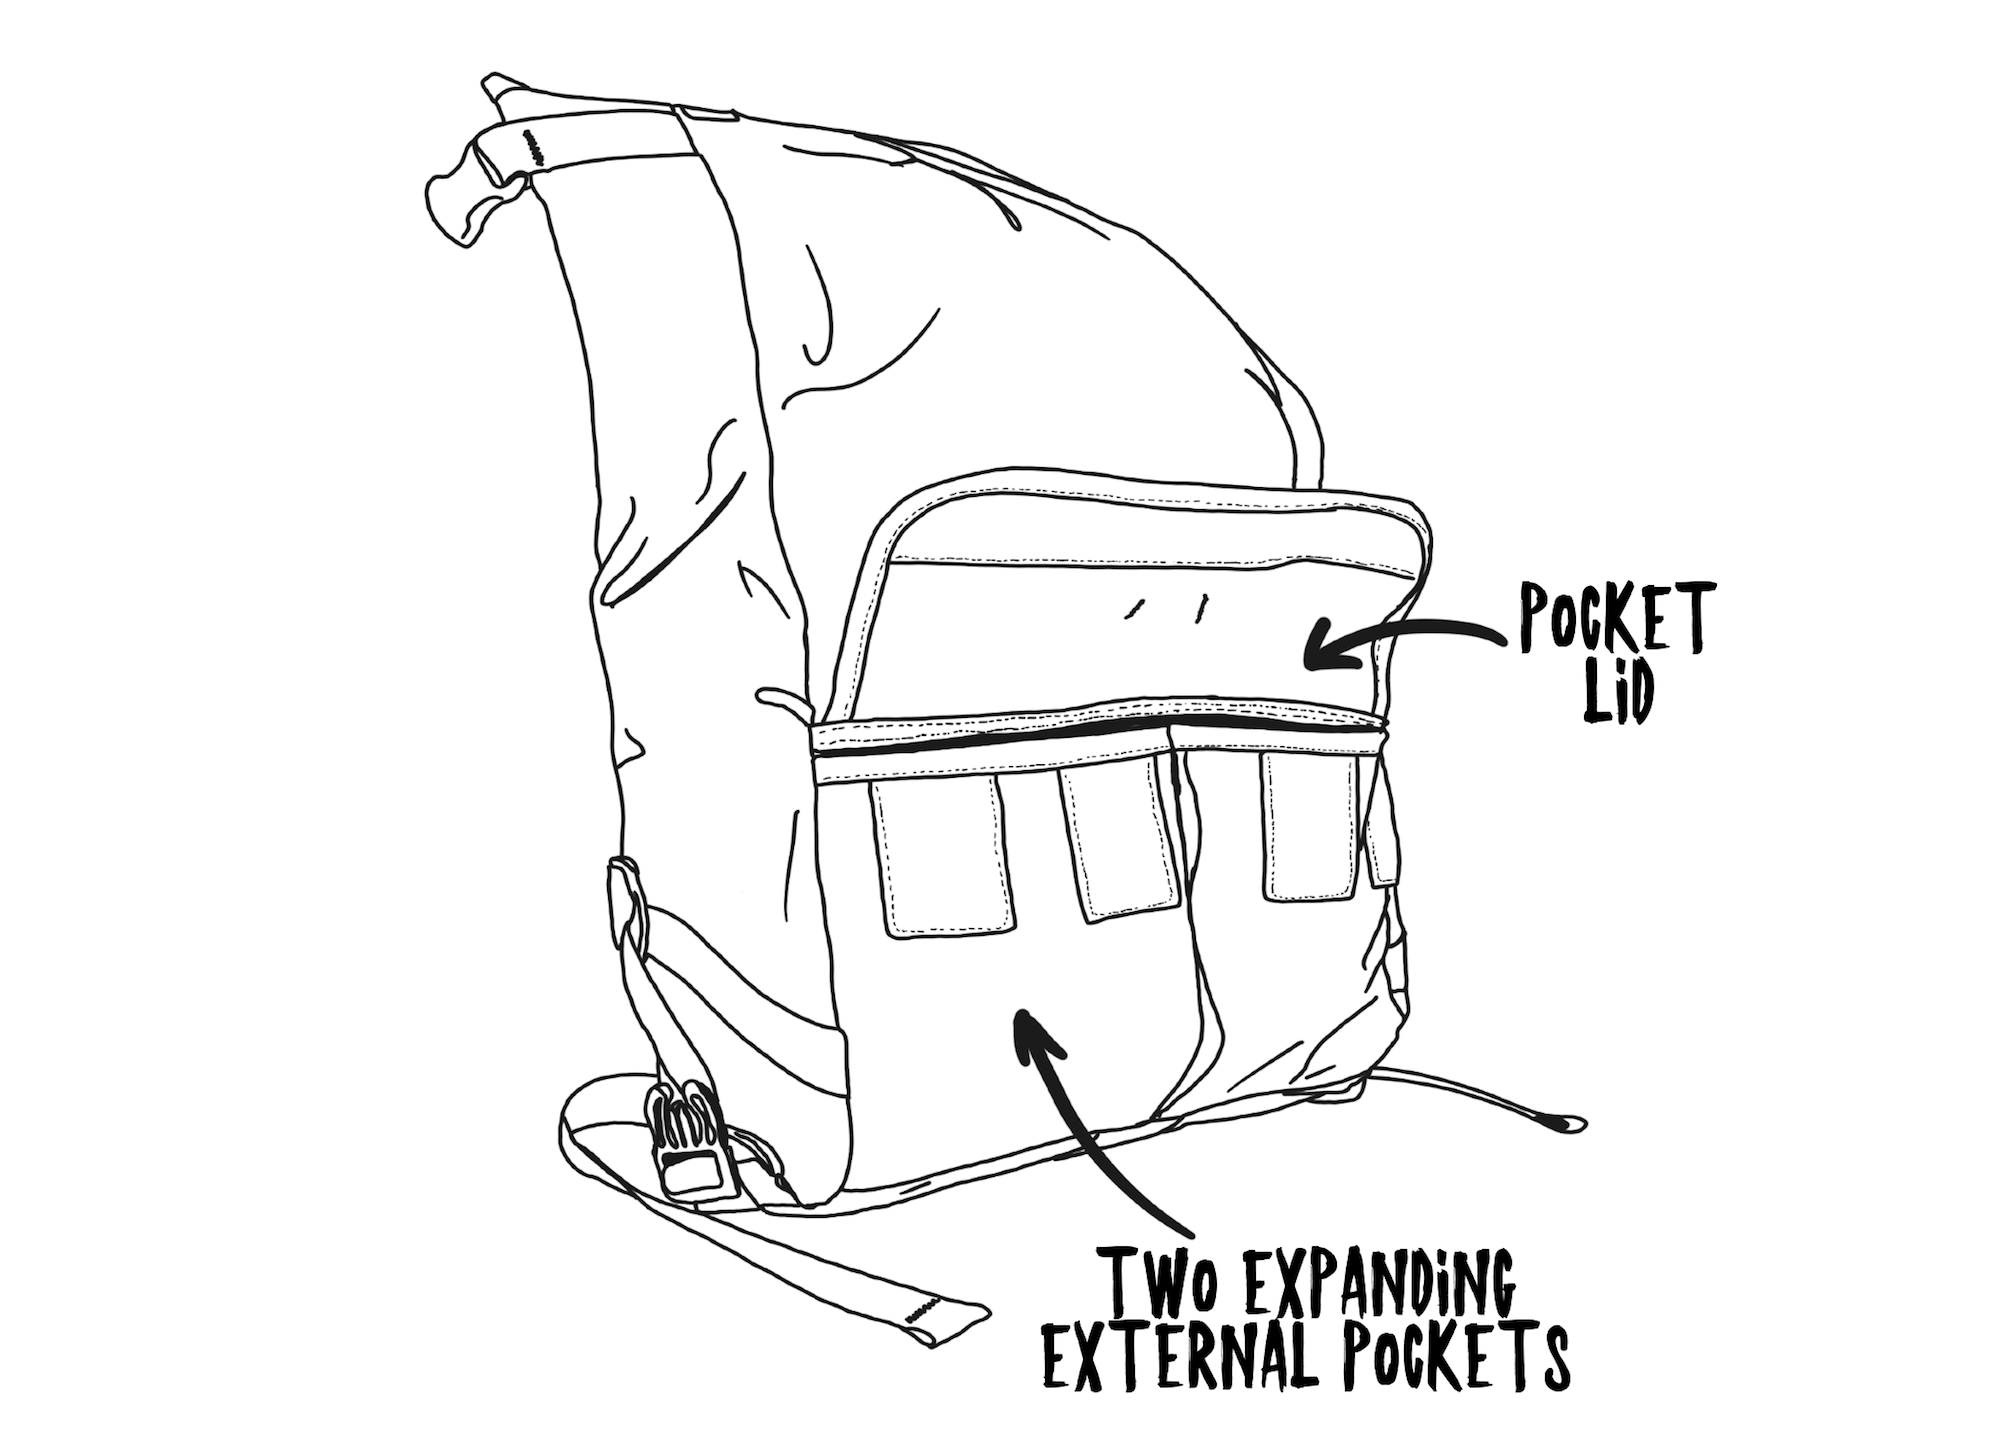 Middle Earth Informational Sketch Front Pockets Expanded